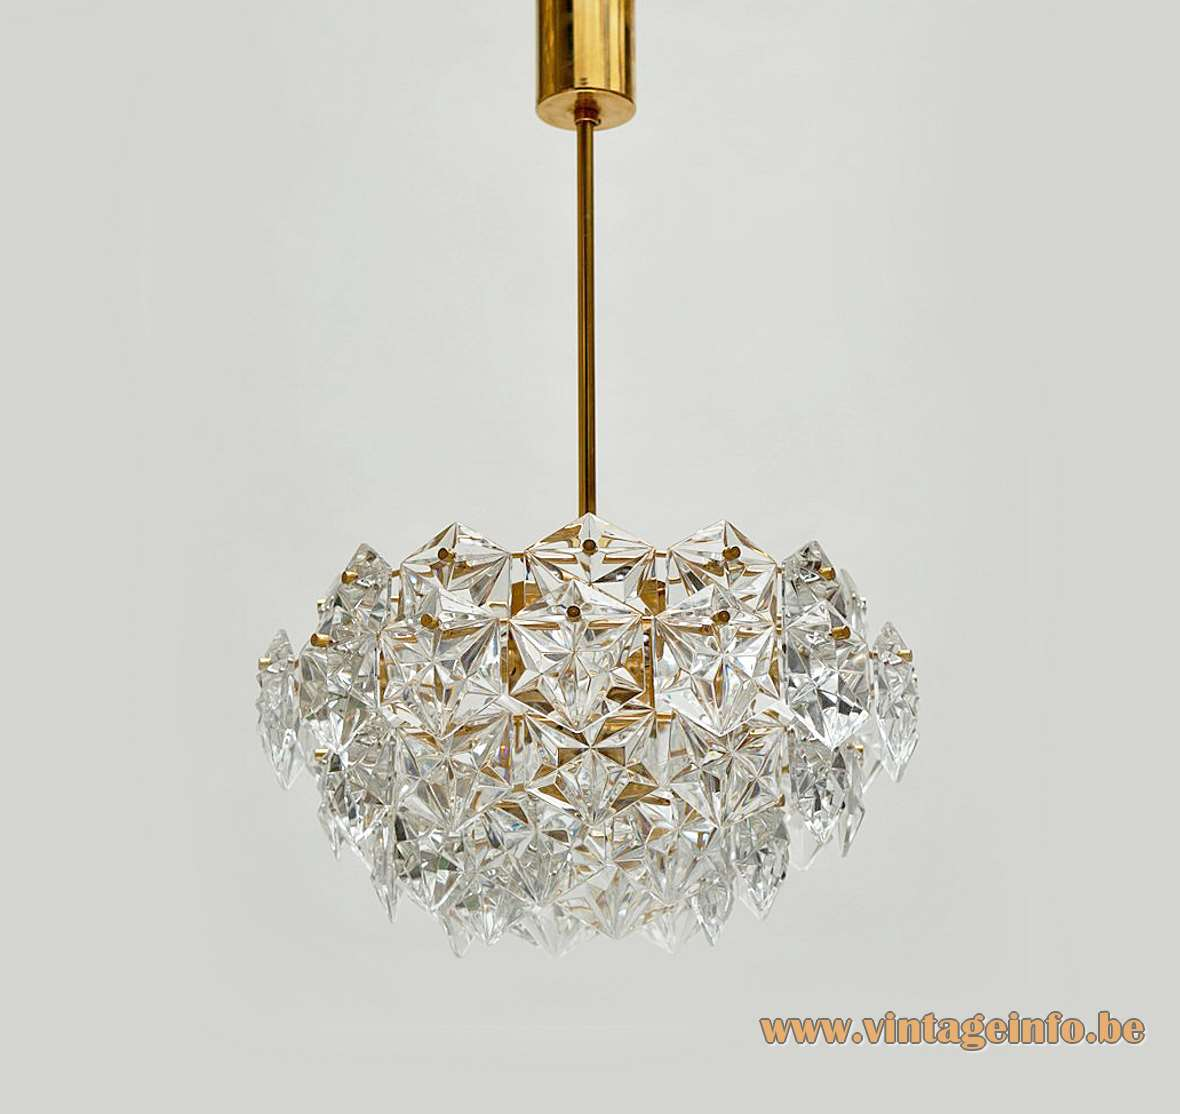 Kinkeldey faceted crystal glass chandelier 54 multifaceted parts gold plated brass frame E27 socket Germany 1960s